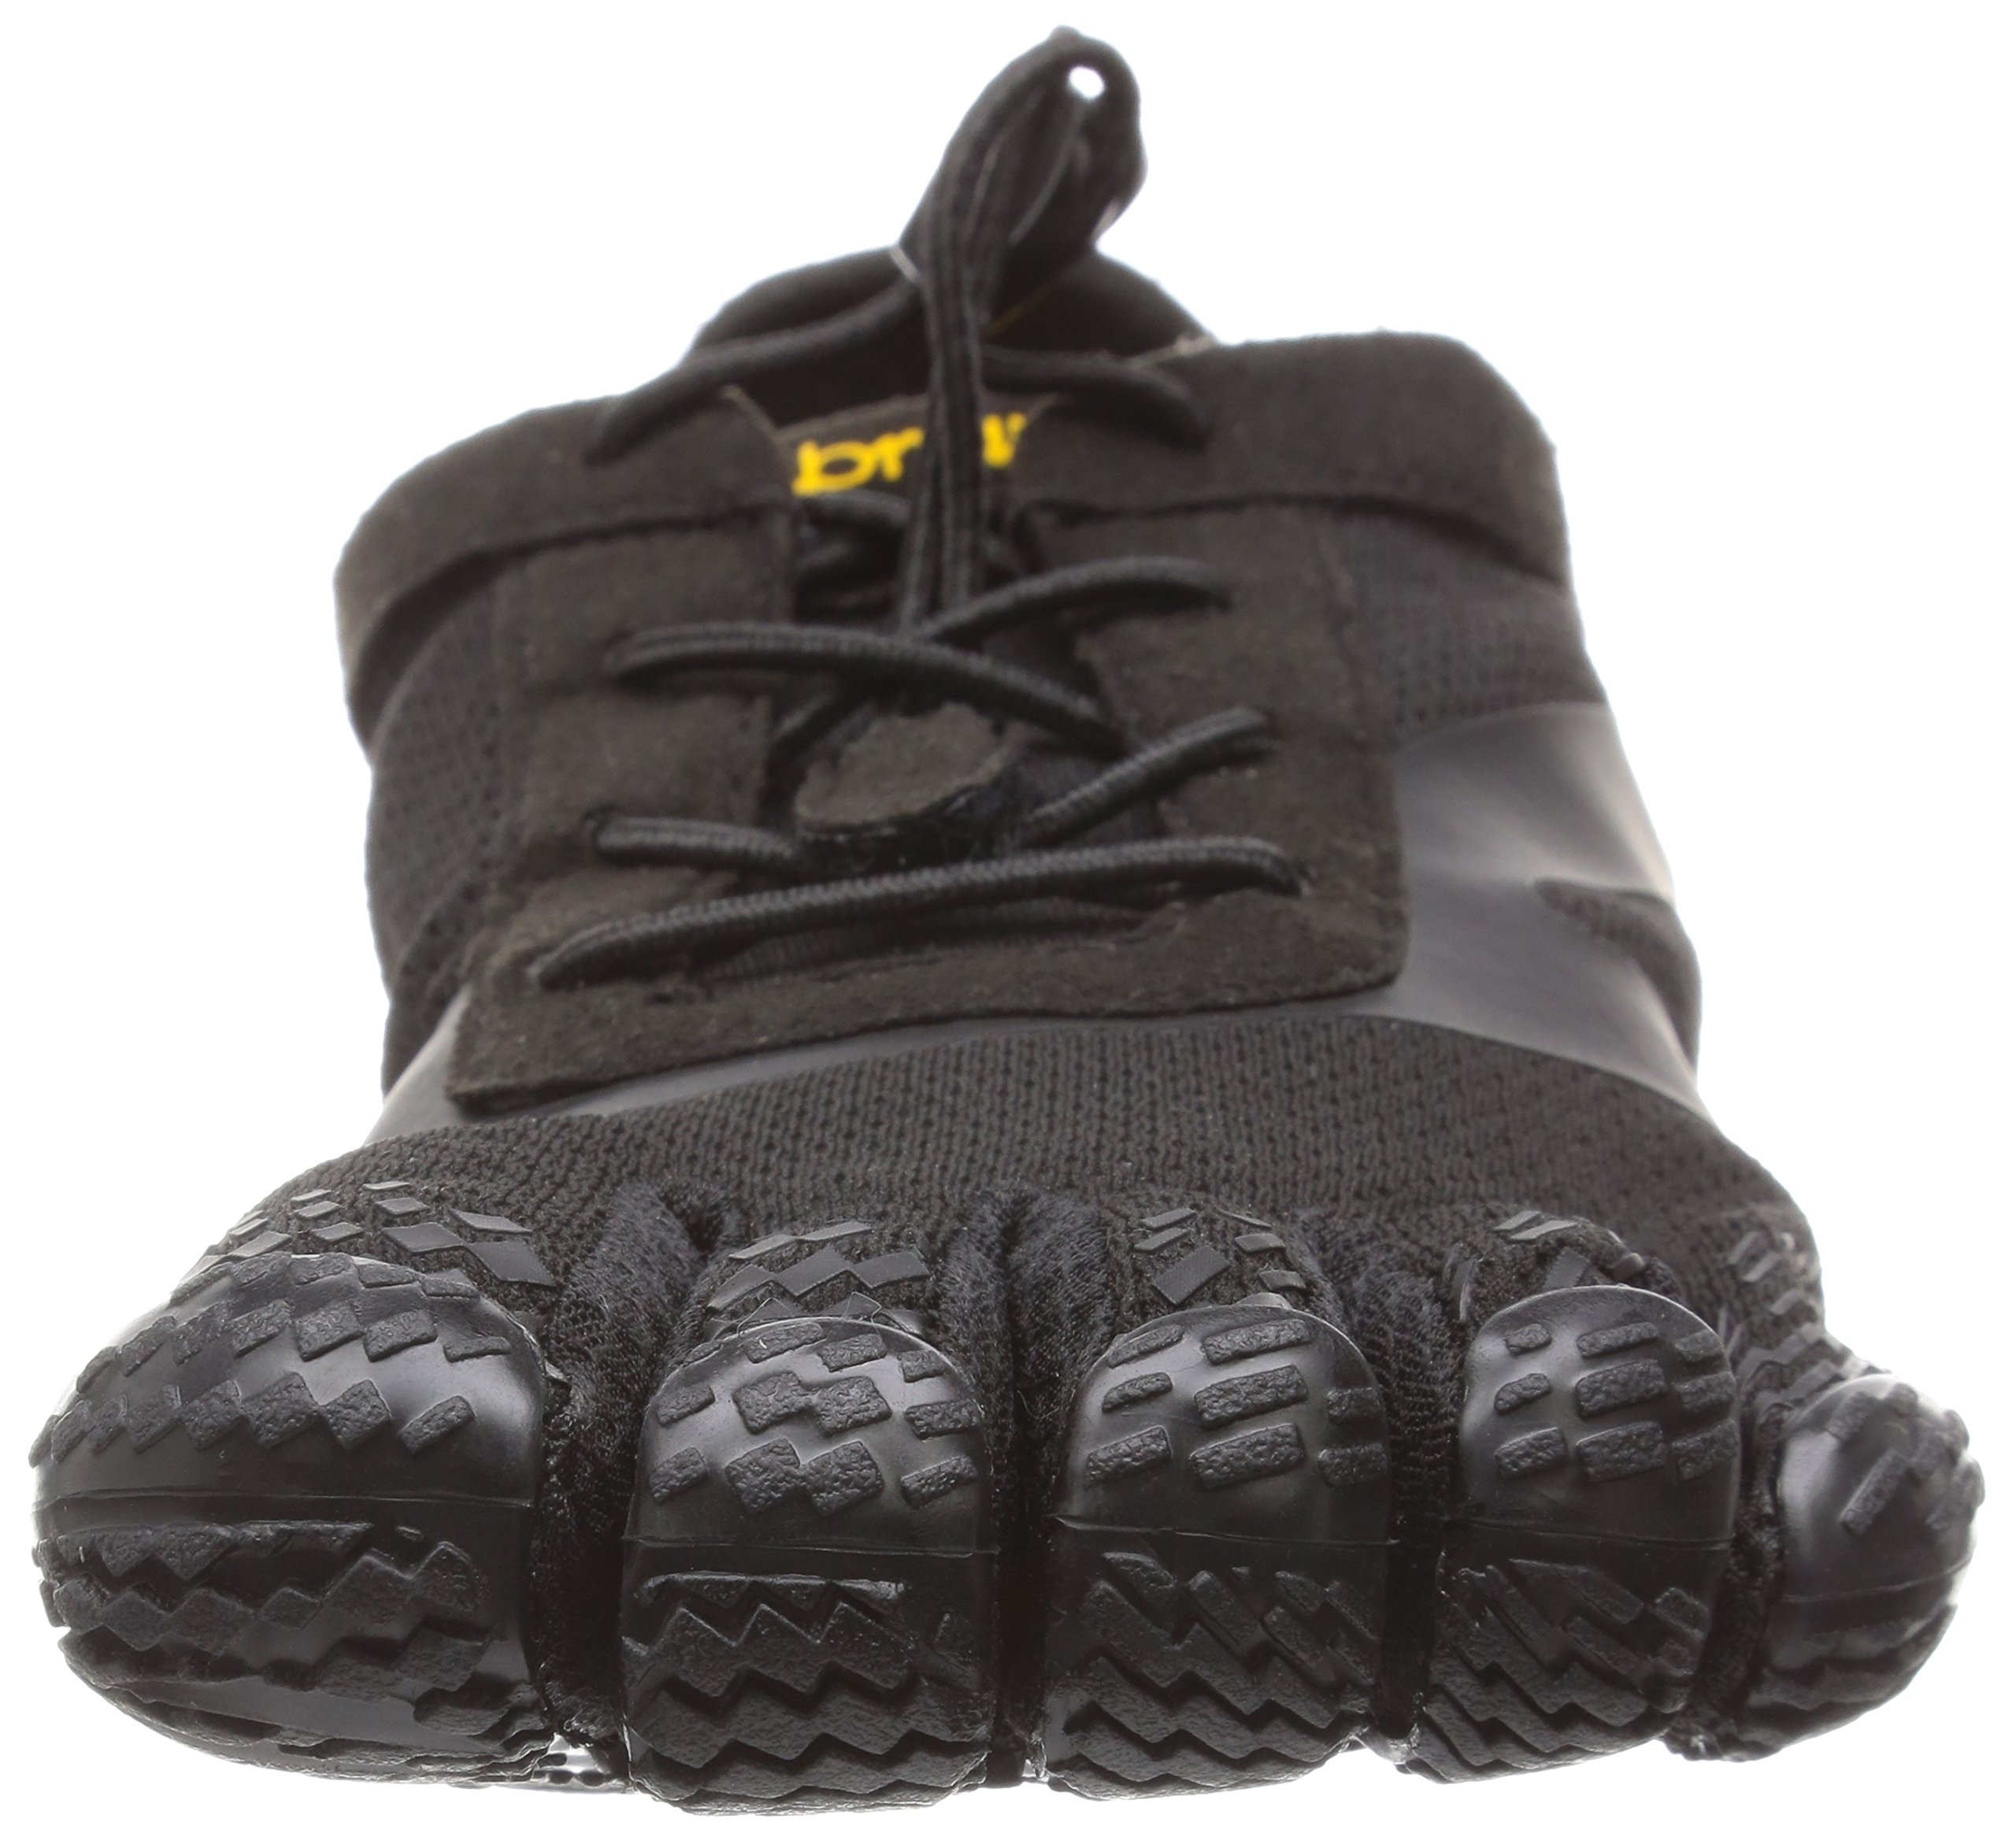 Vibram Men's KSO EVO Cross Training Shoe,Black,41 EU/8.5-9.0 M US by Vibram (Image #4)